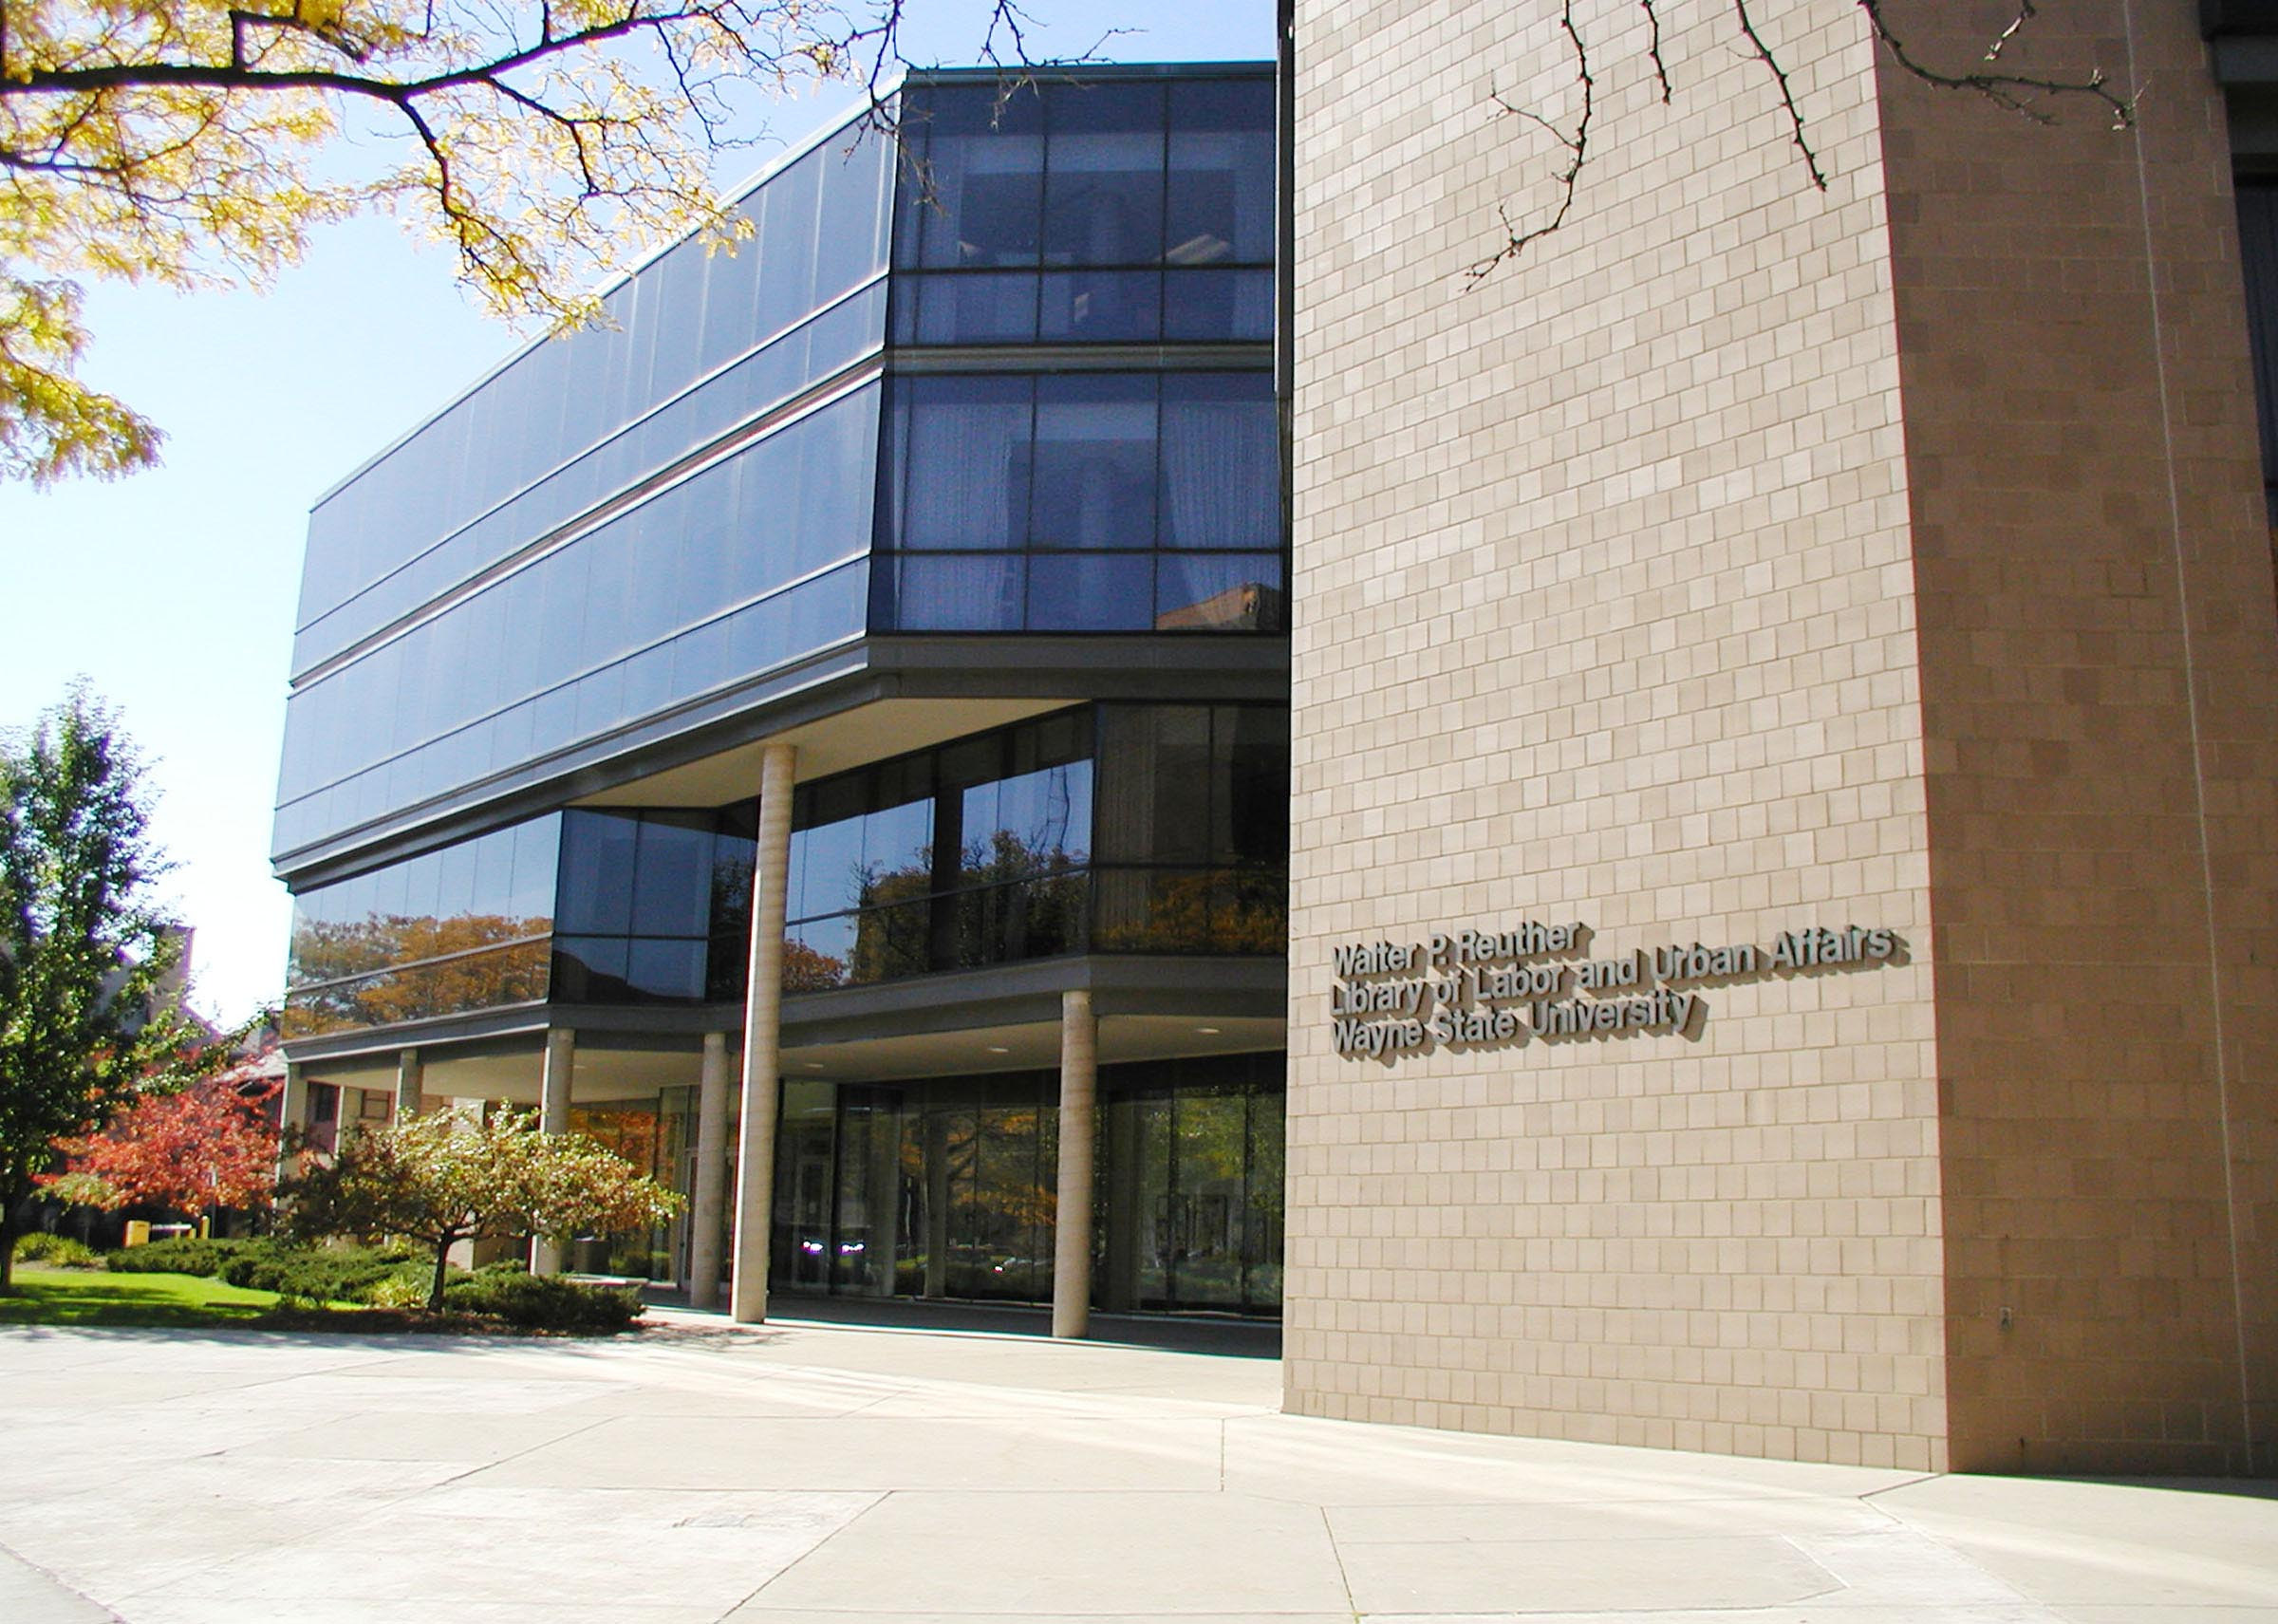 wayne state Walter P Reuther Library